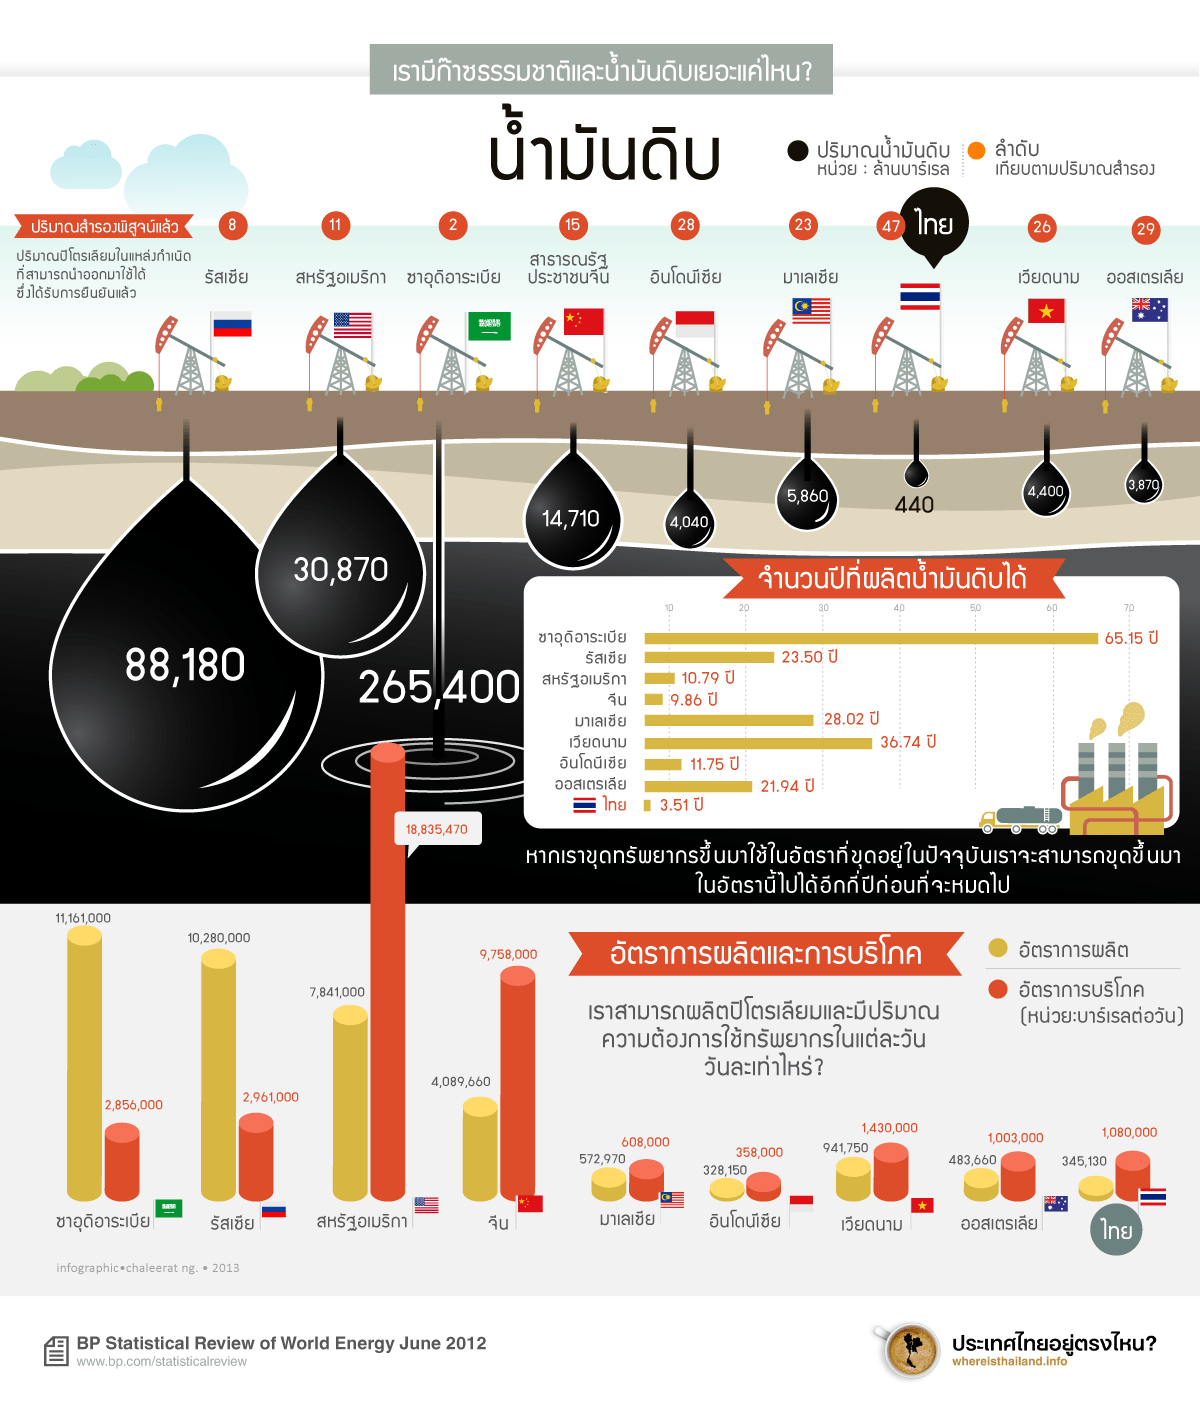 PetroleumThai-infographic-Proved-Reserves-of-Oil